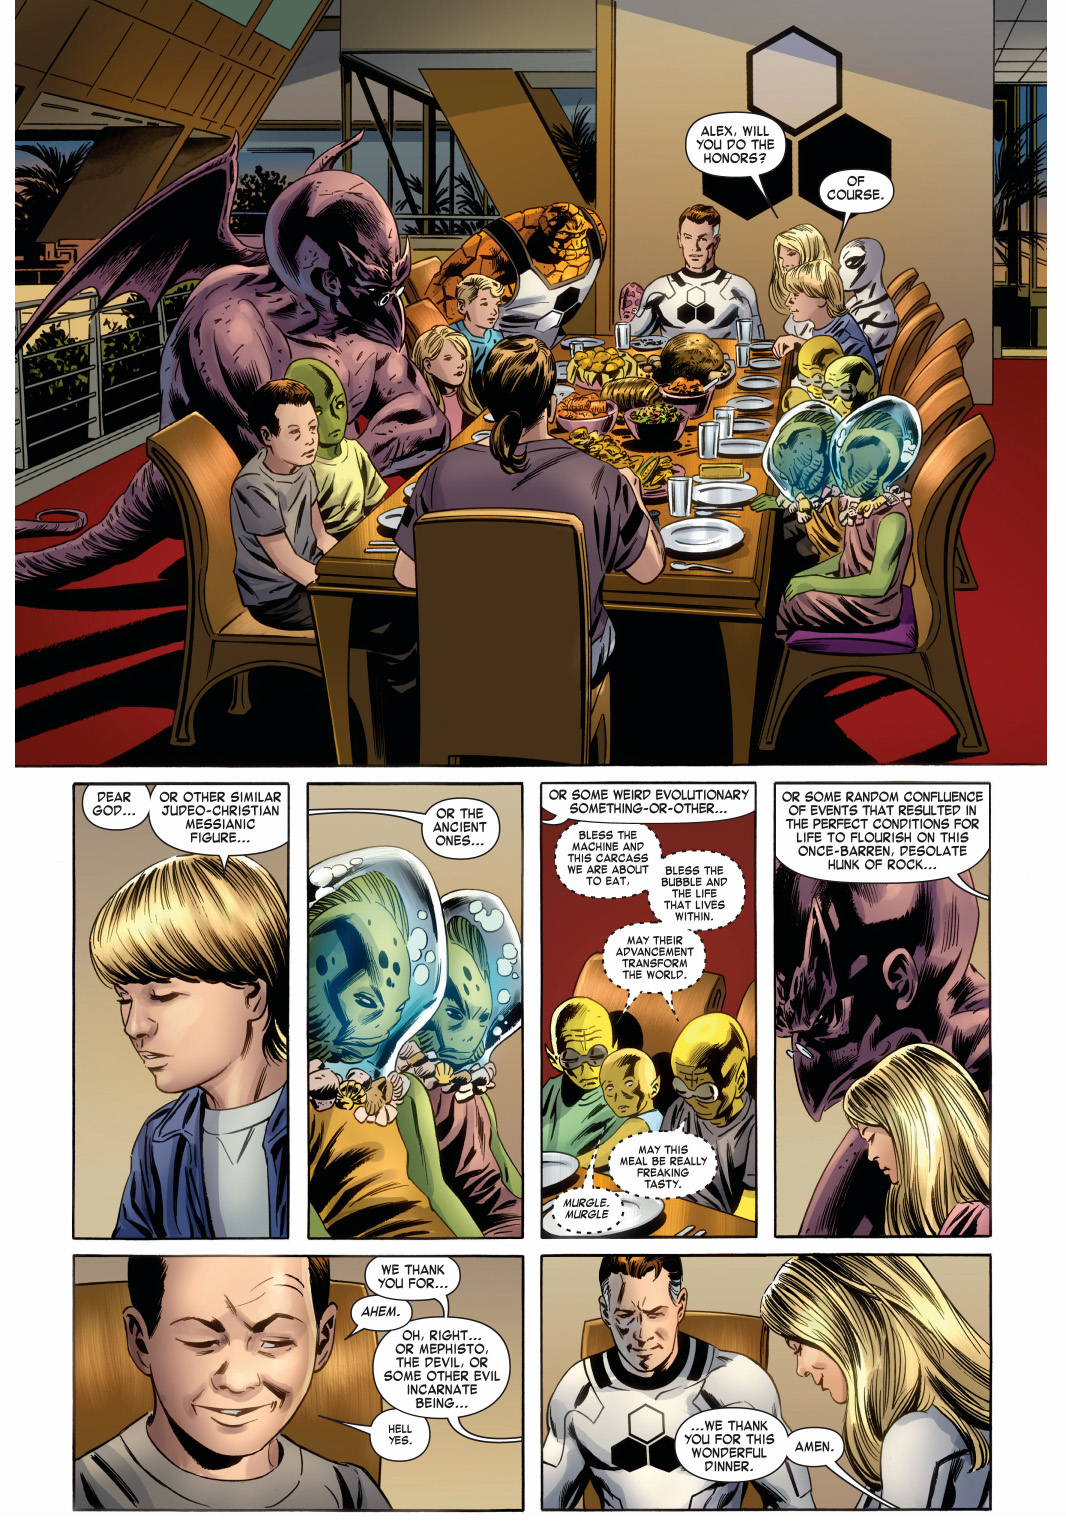 saying grace at the fantastic four table